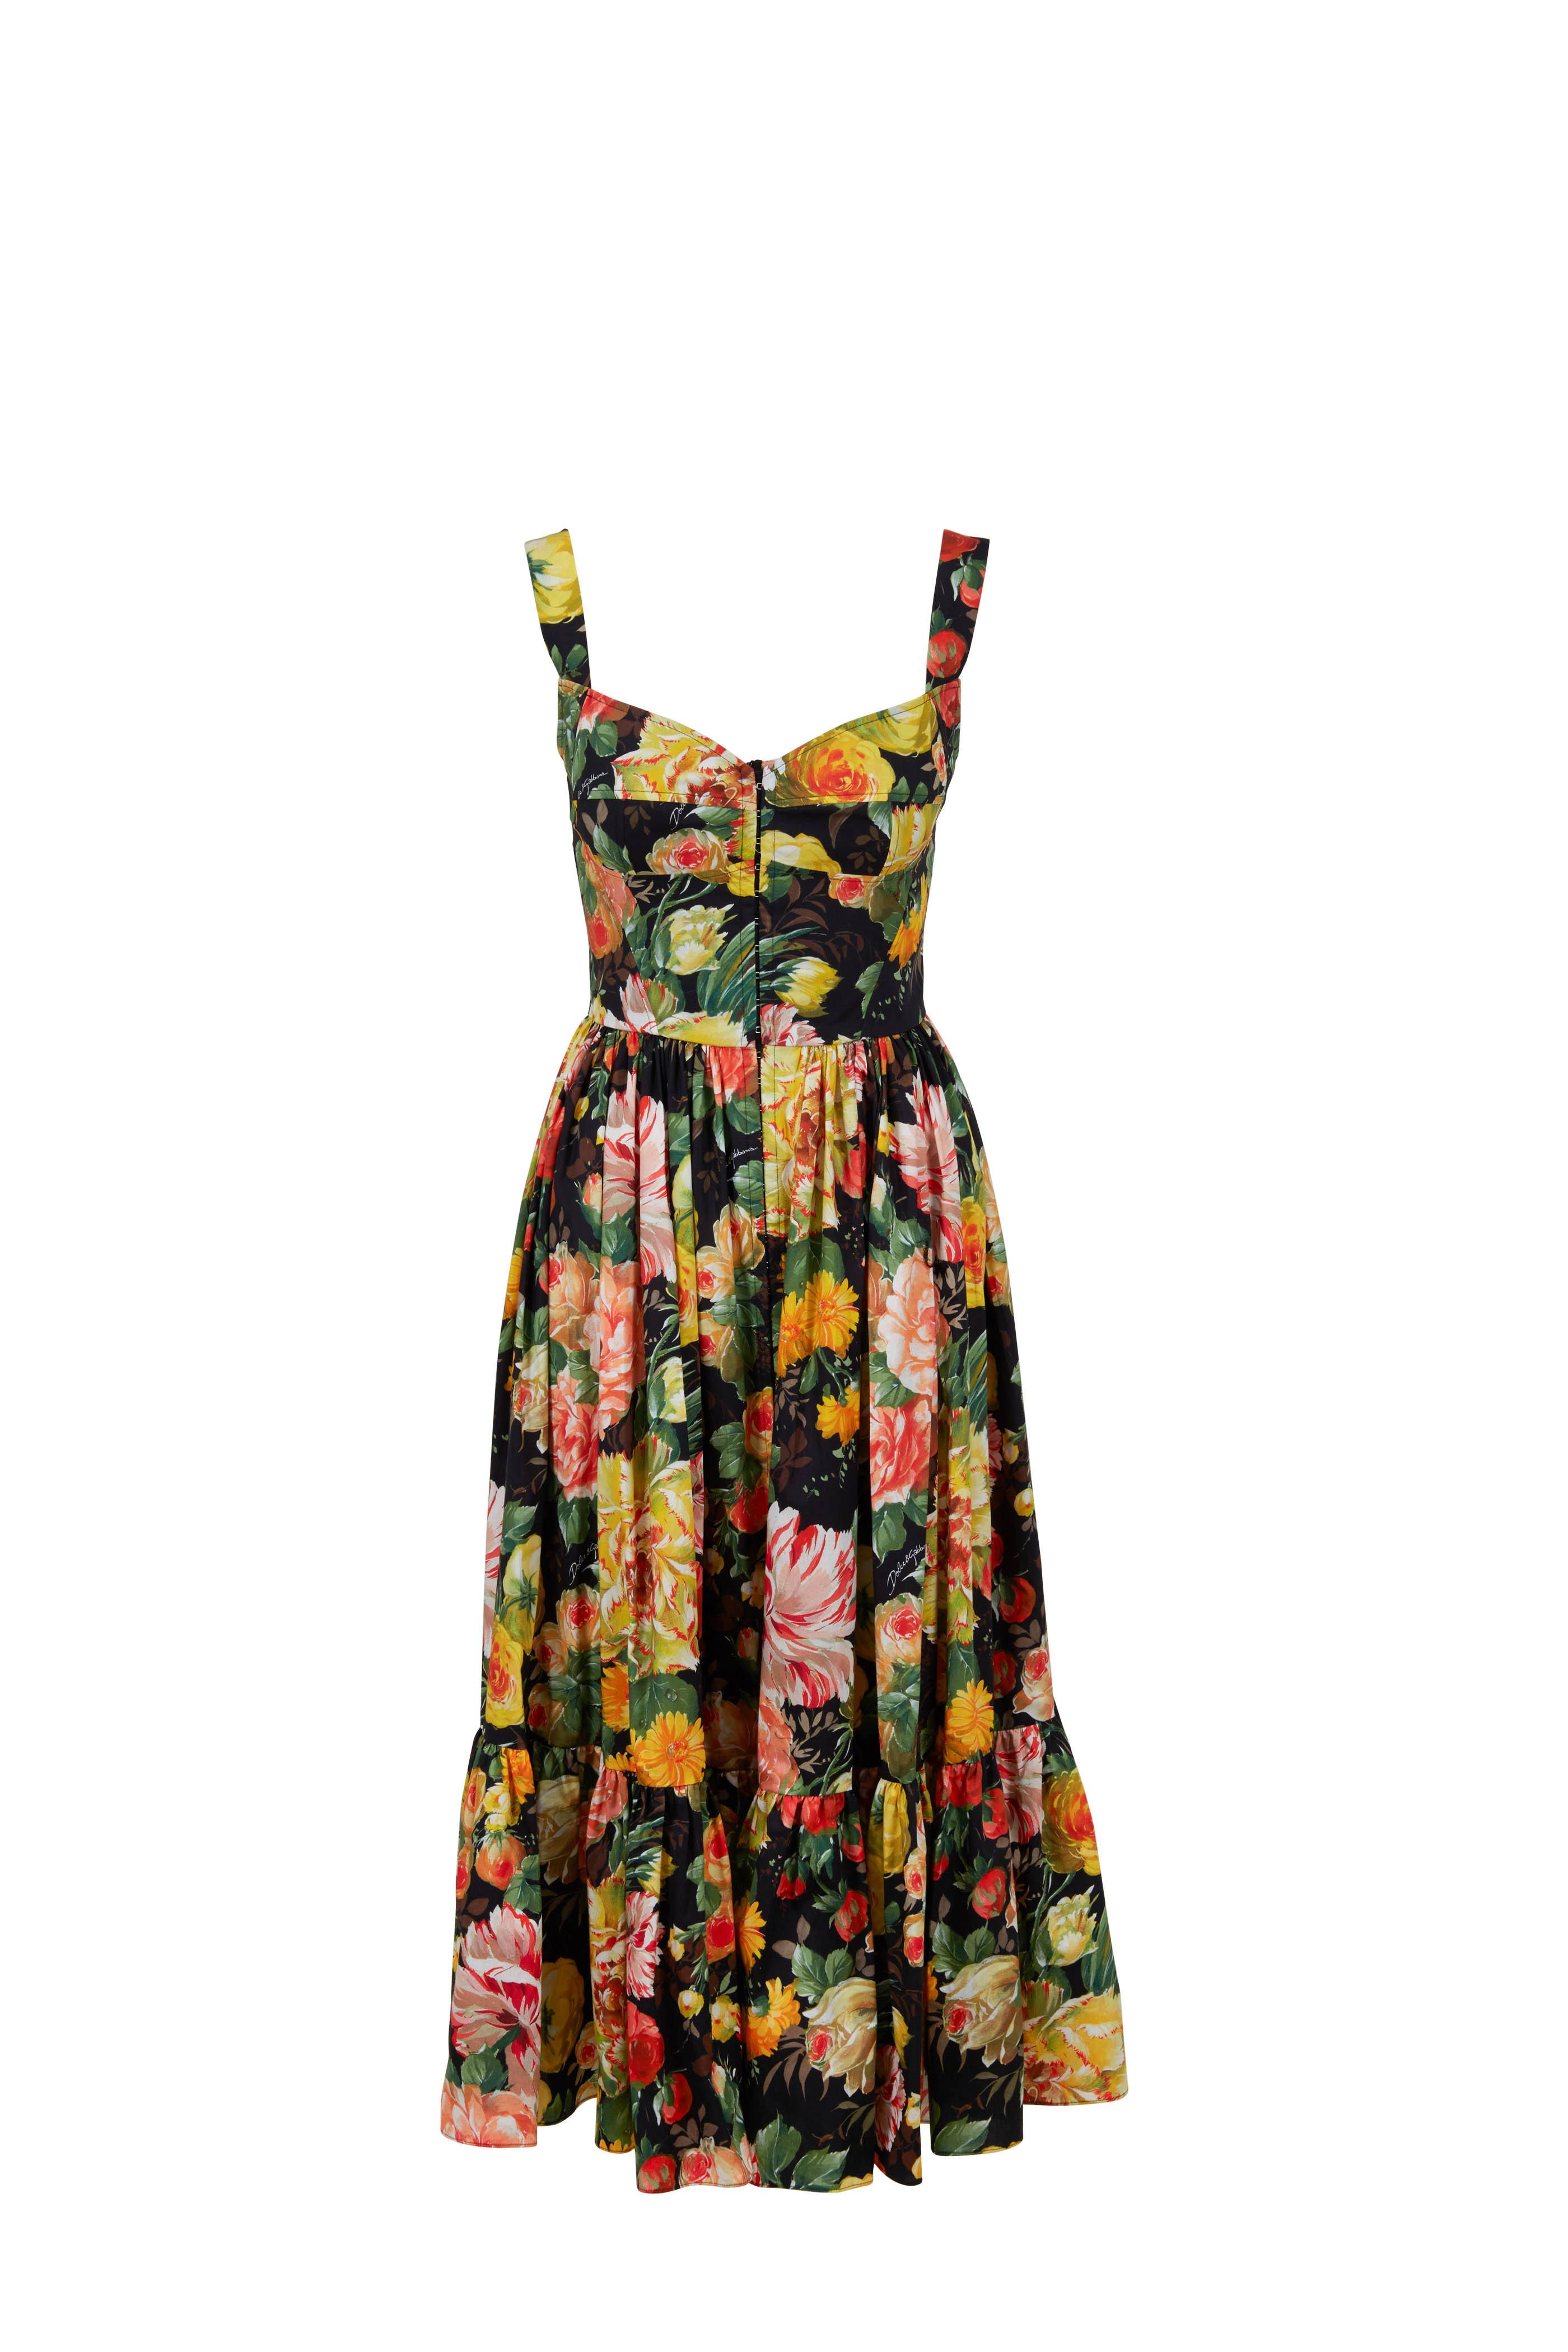 d683084fdb86e Black & Yellow Floral Printed Fit-To-Flare Dress in 2019 | Resort ...